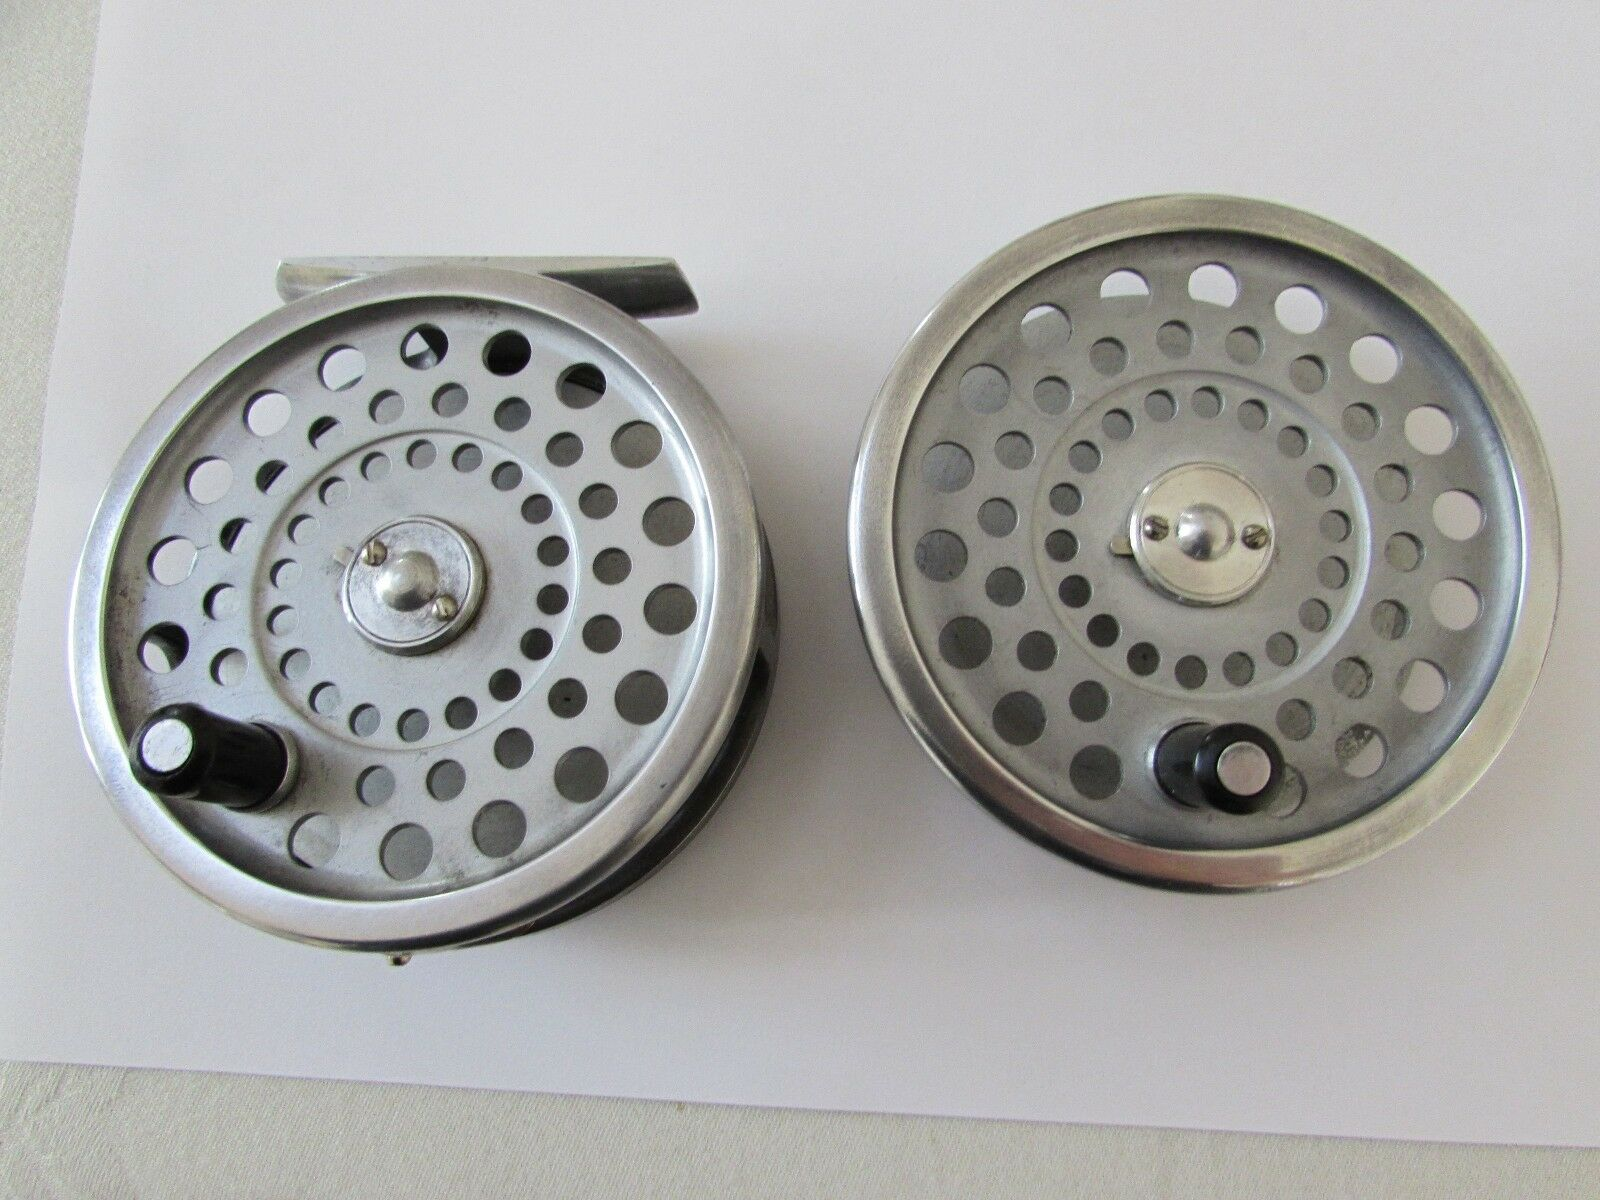 Very good original vintage hardy marquis no. 7 trout fly fishing reel + spool .